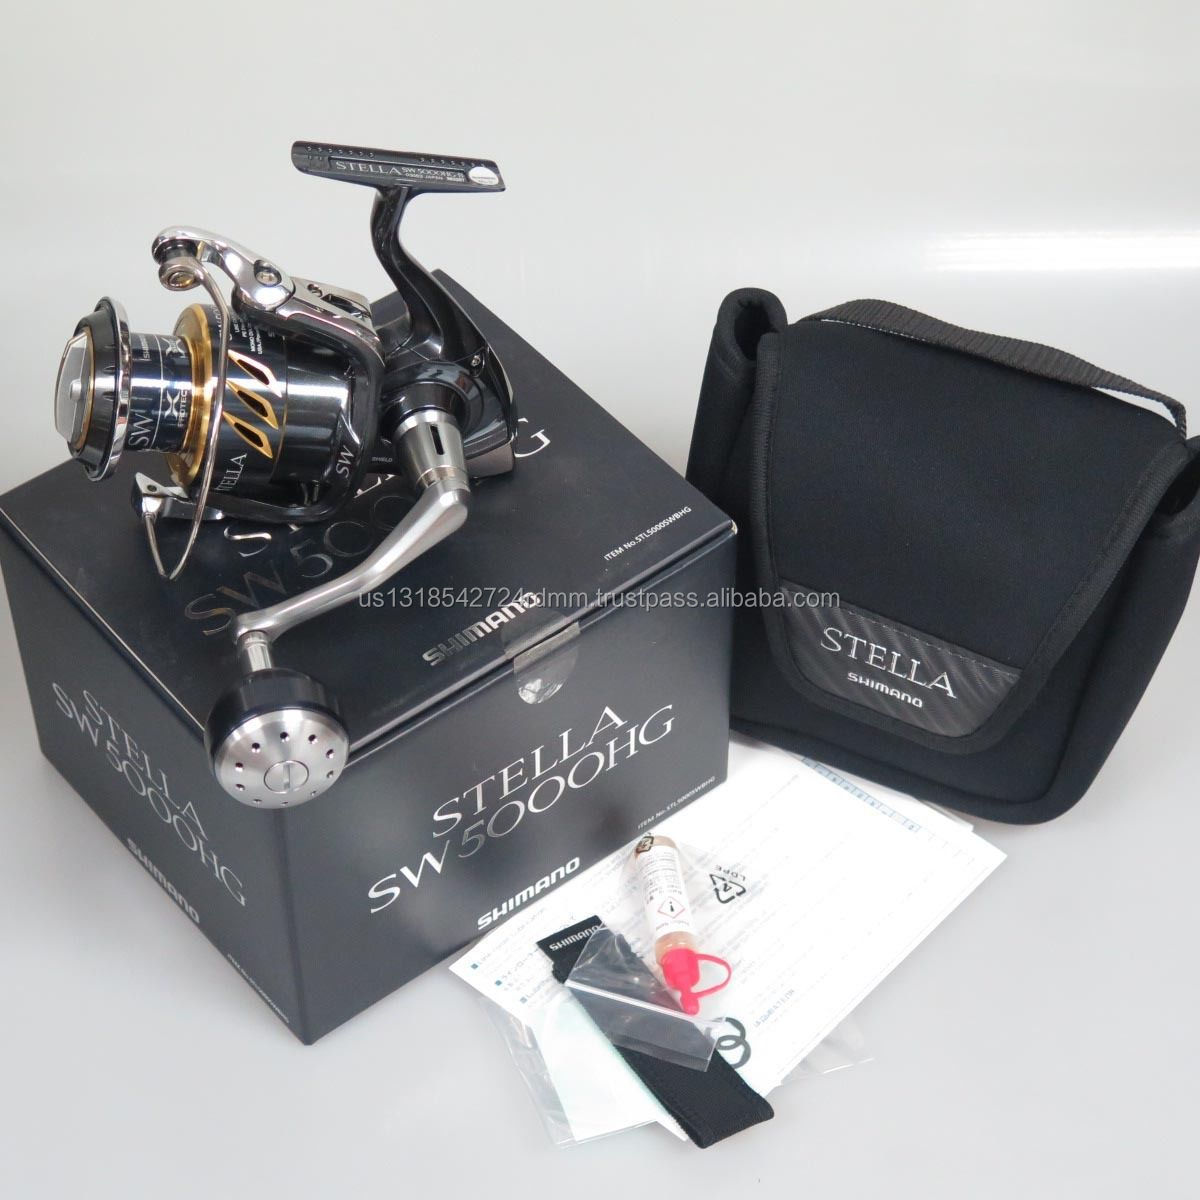 Stella Spinning Reel, Stella Spinning Reel Suppliers and